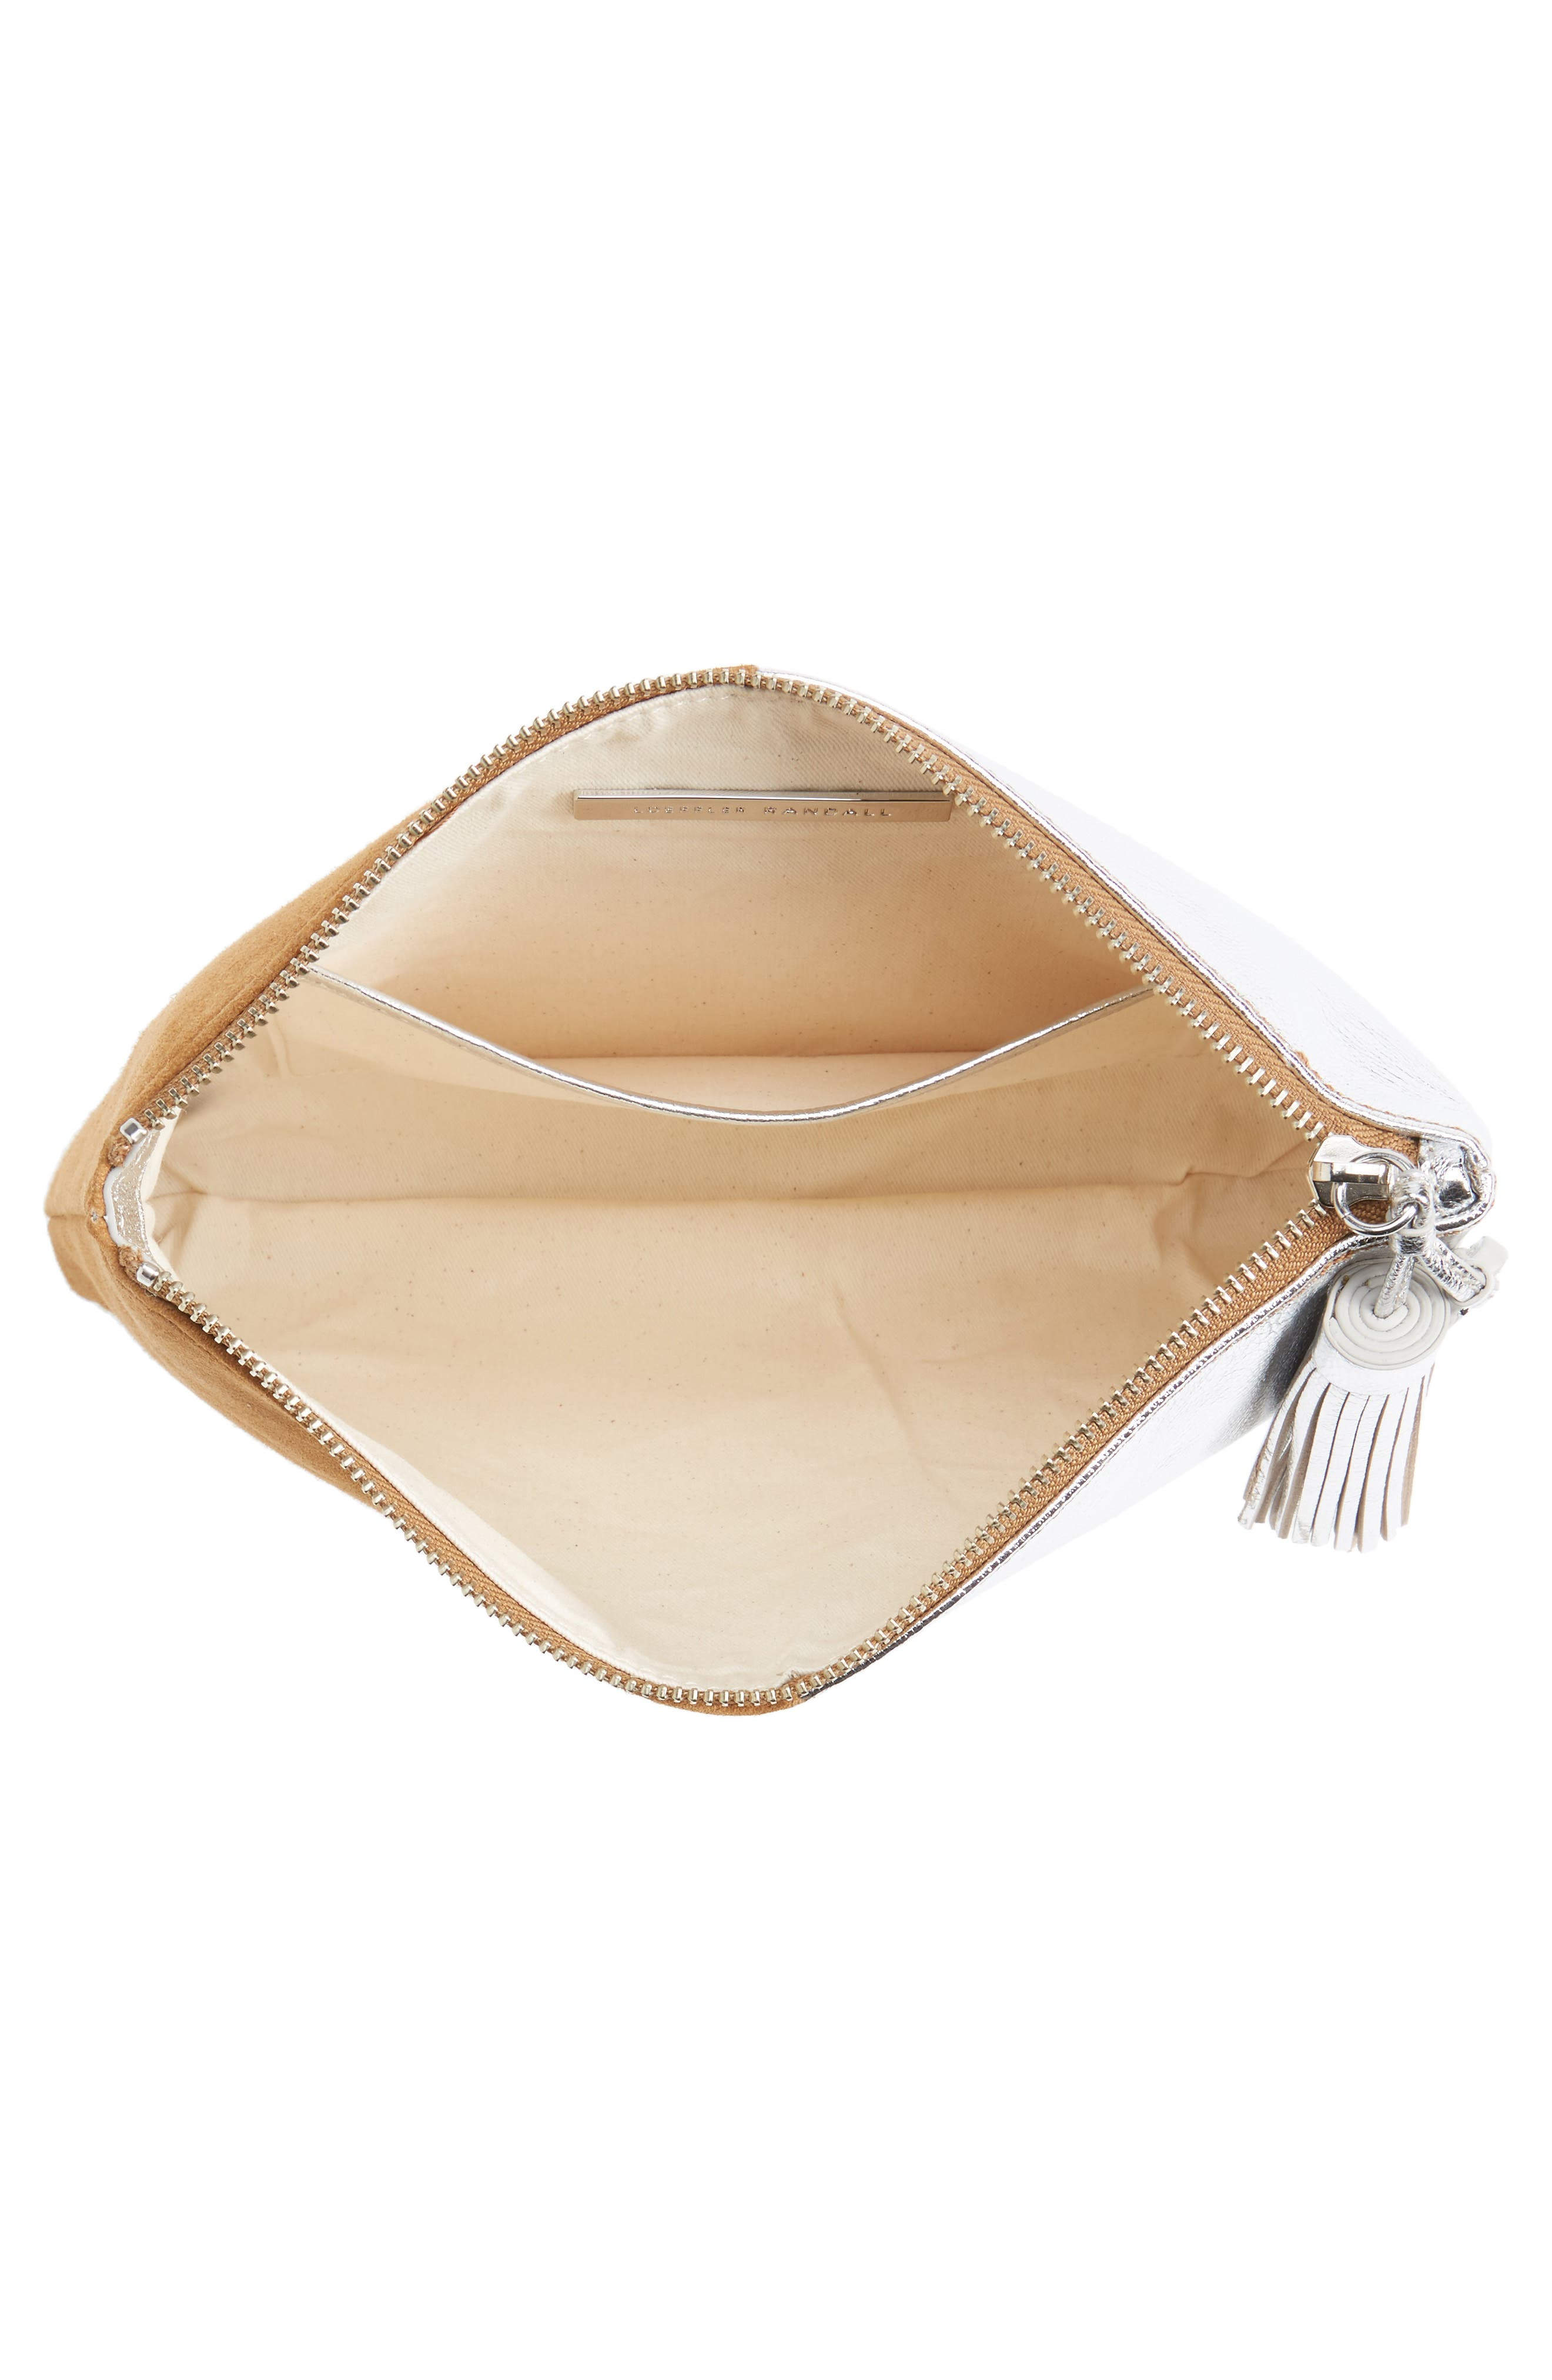 Tassel Metallic Leather & Suede Pouch,                             Alternate thumbnail 4, color,                             269